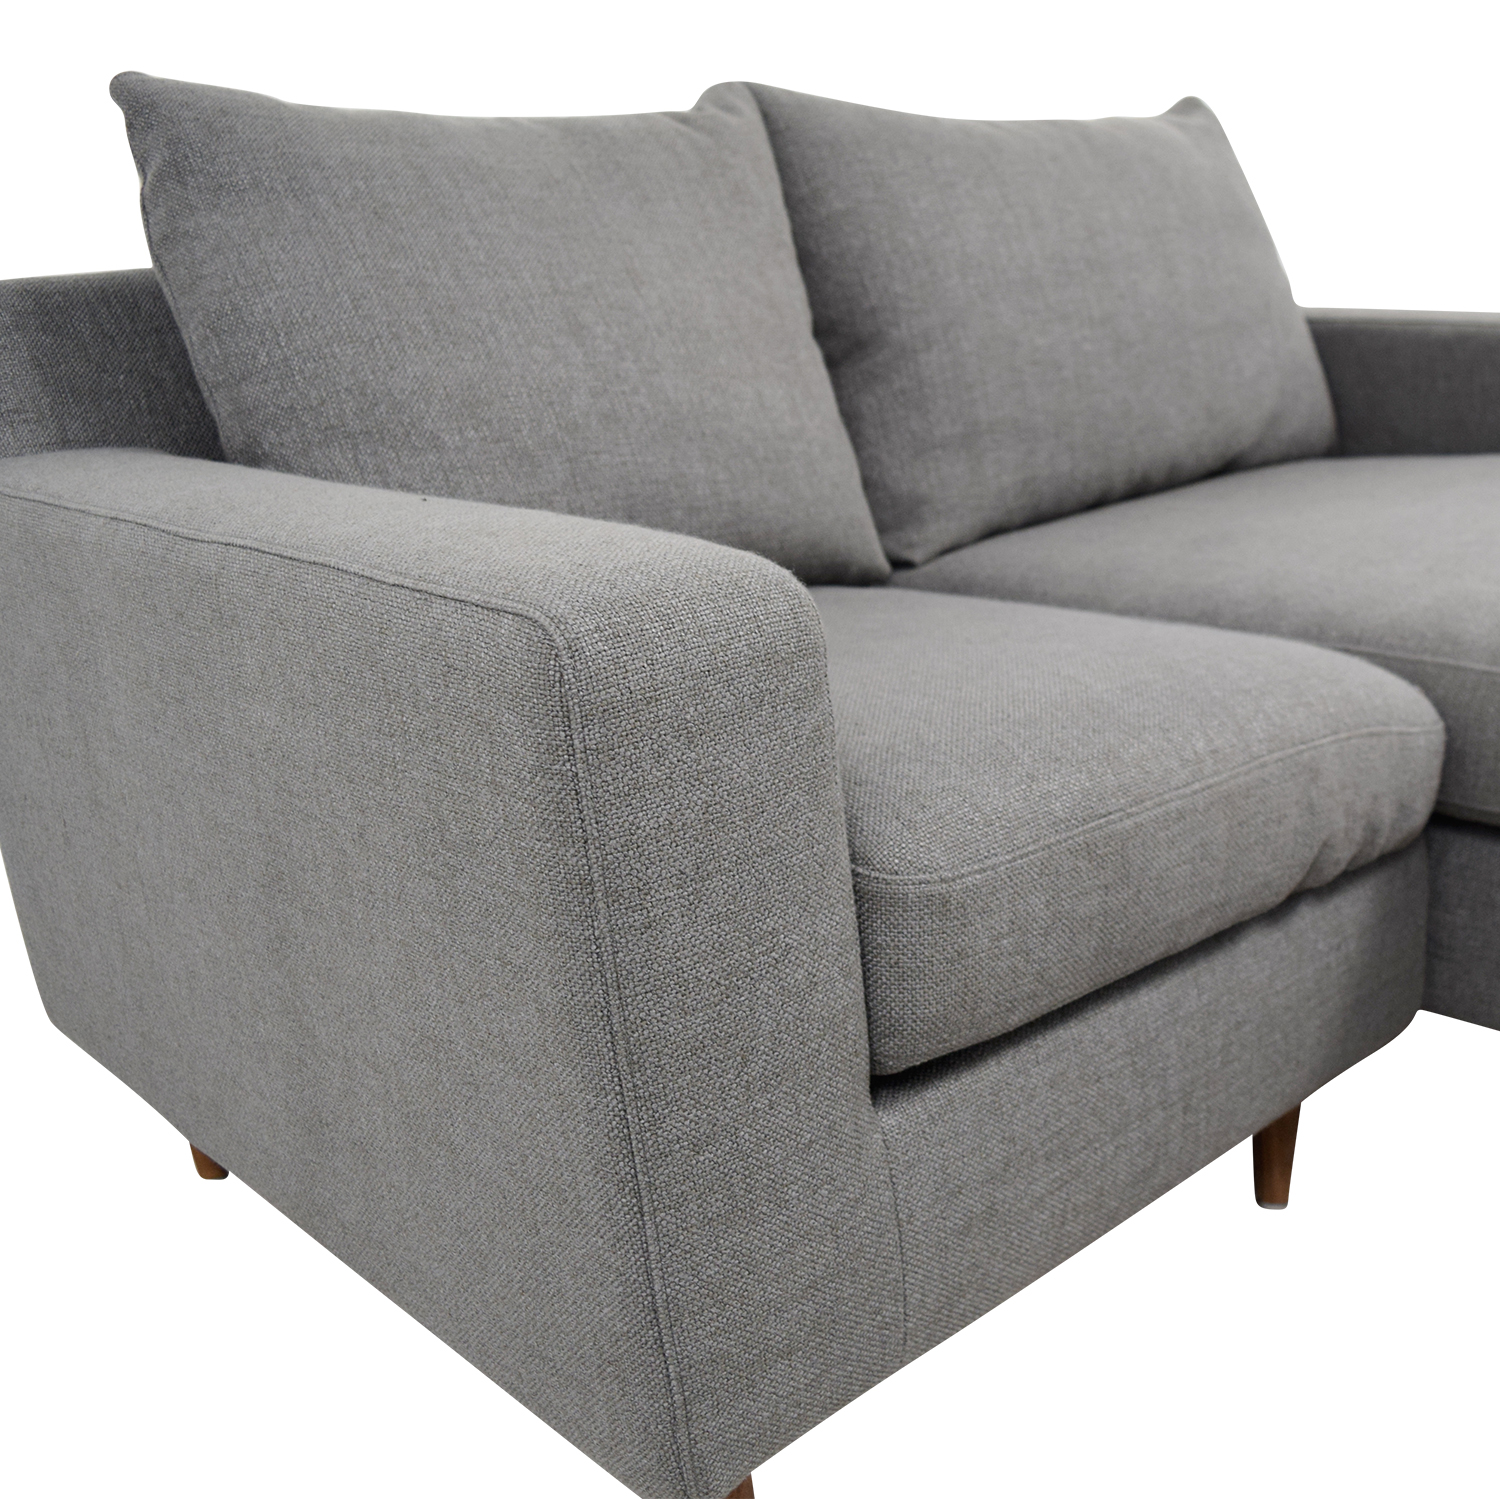 Chaise define custom sloan left chaise sectional from - Chaise lounge definition ...